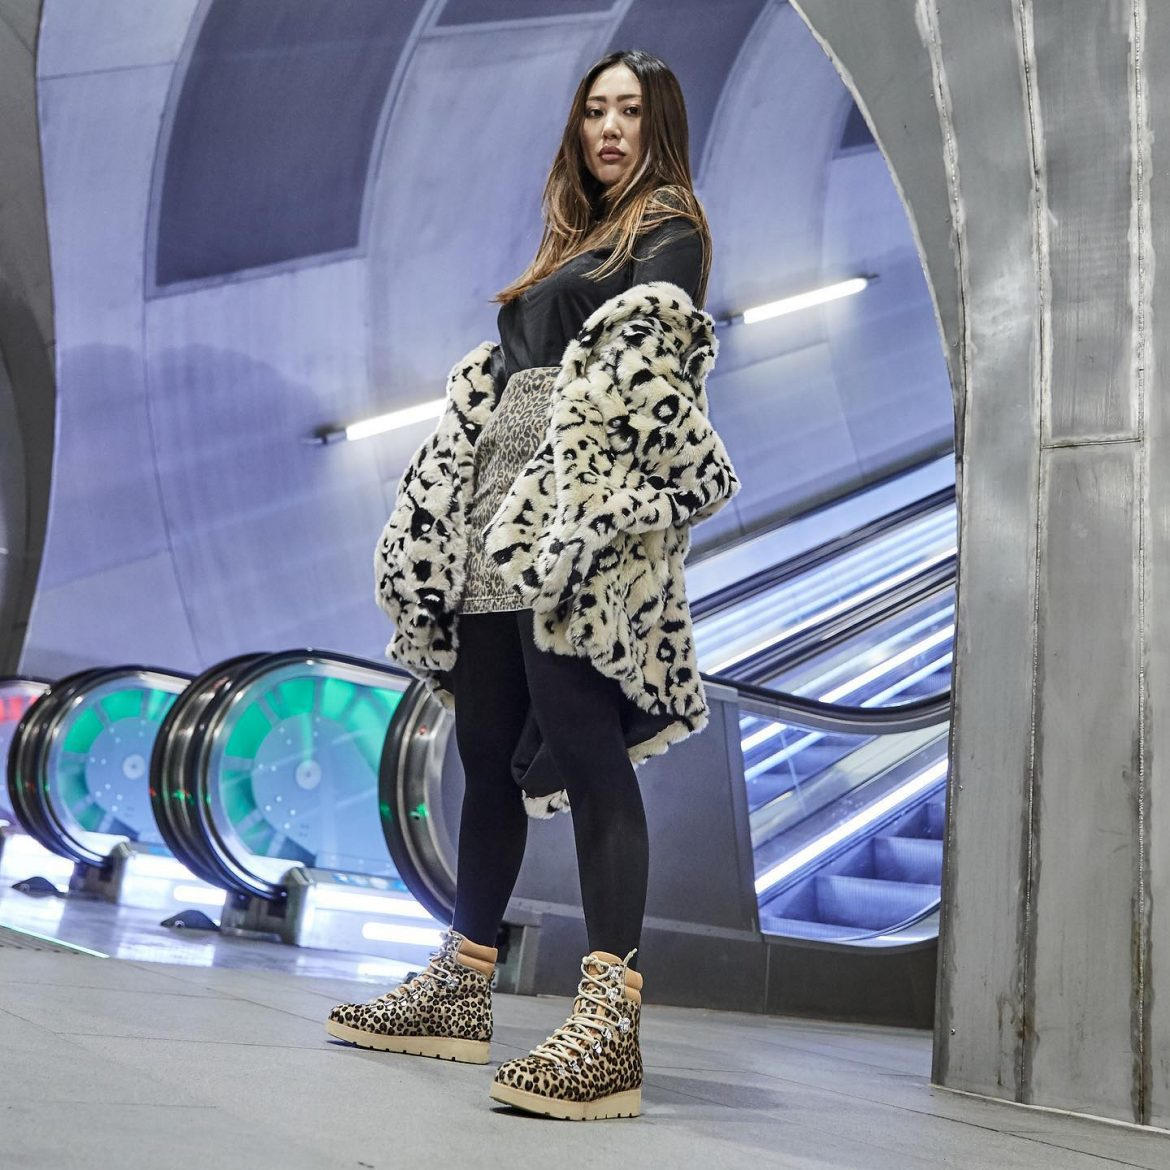 What's-not-to-love-dnashoes-rootsshoes-news-aw19-leopardprint-Se.fnaohf3feadc238f7d4b5659d6094e2093a81oe5DF1B726.jpeg